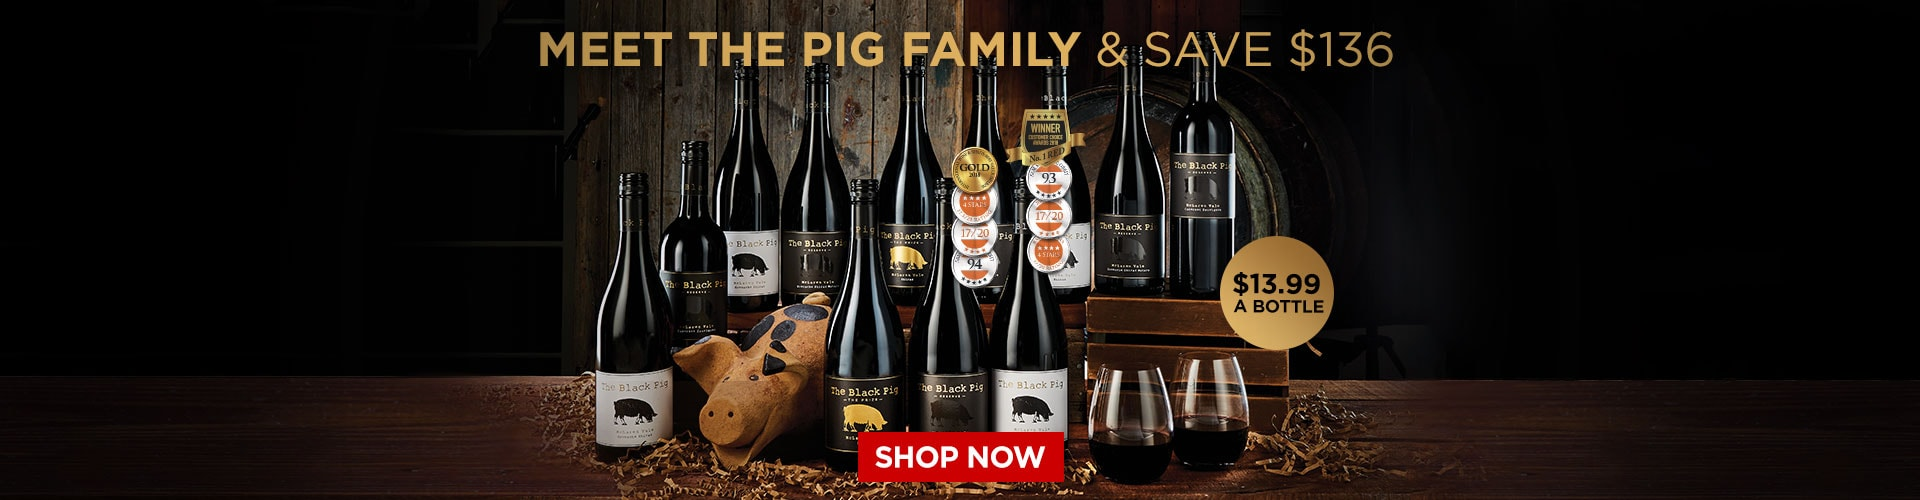 Meet The Black Pig Family - Shop Now